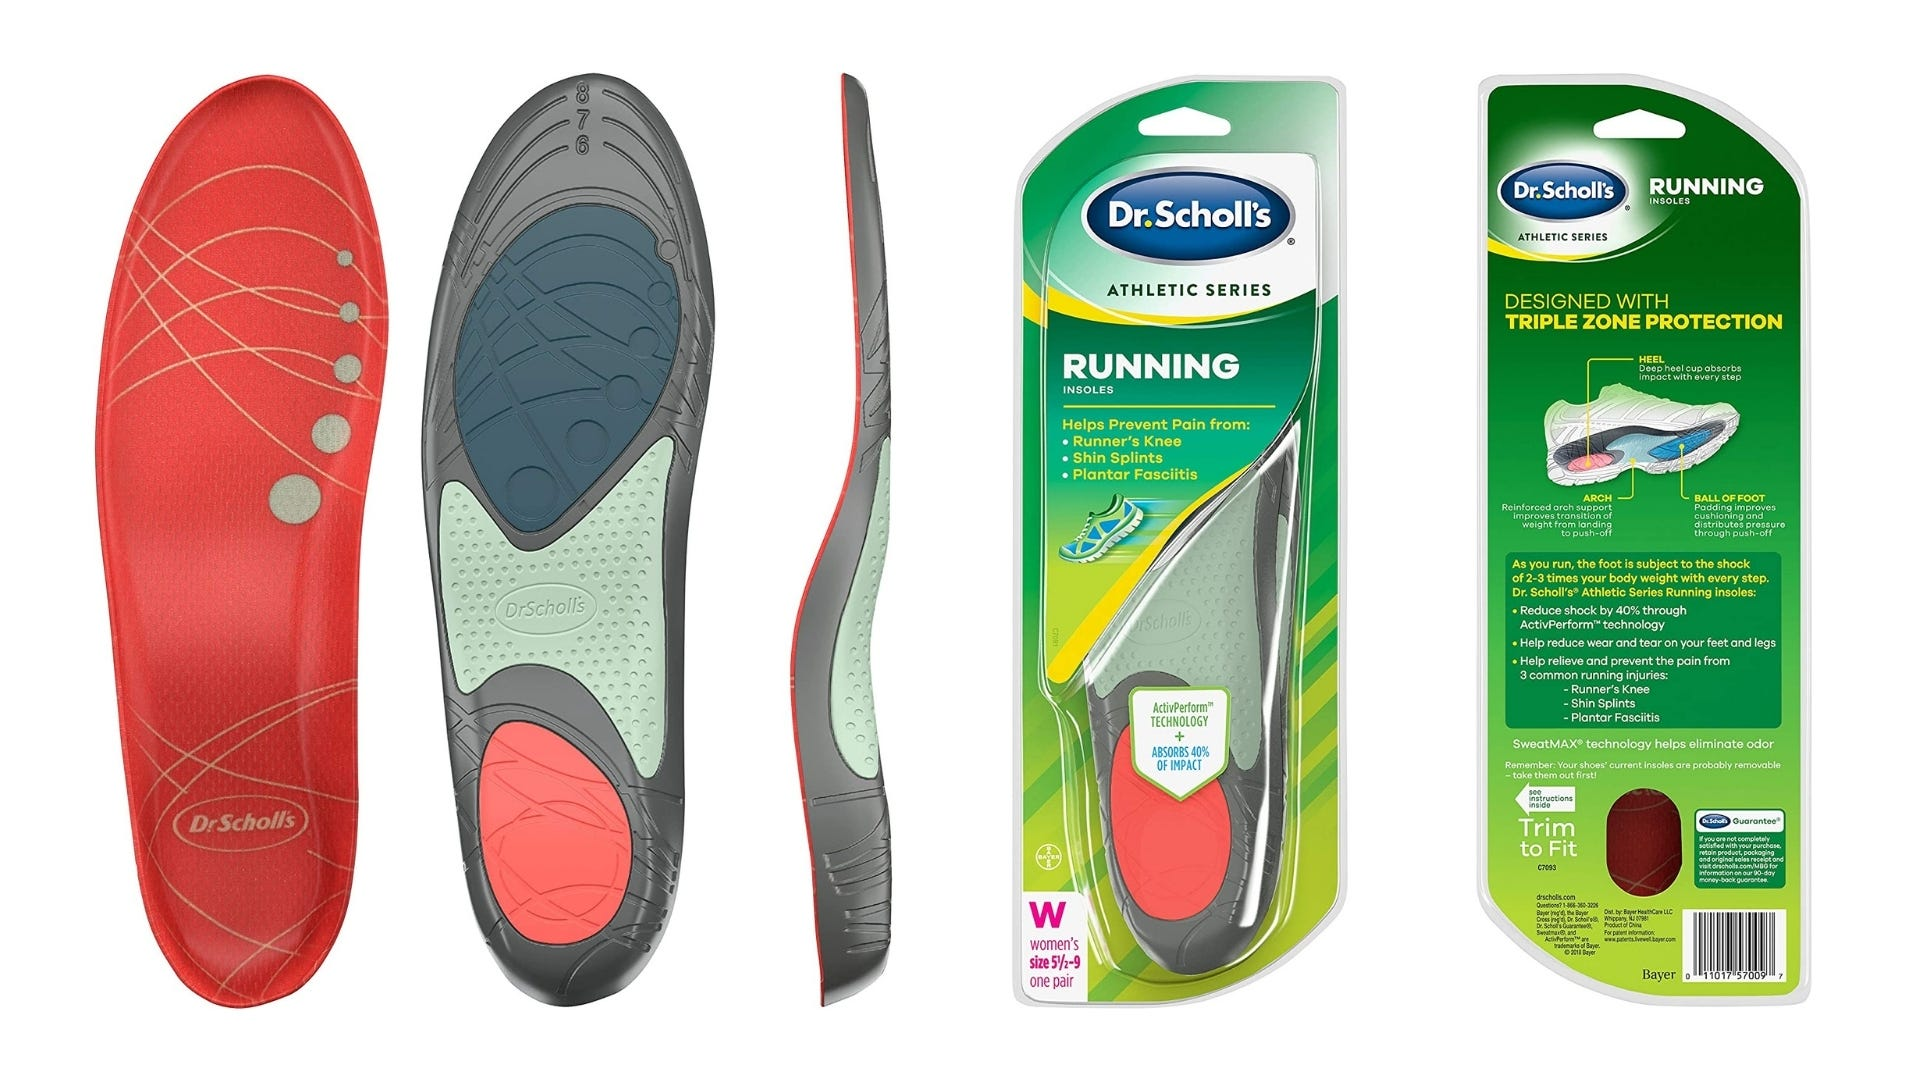 Product photos of Dr. Scholl's running insoles.